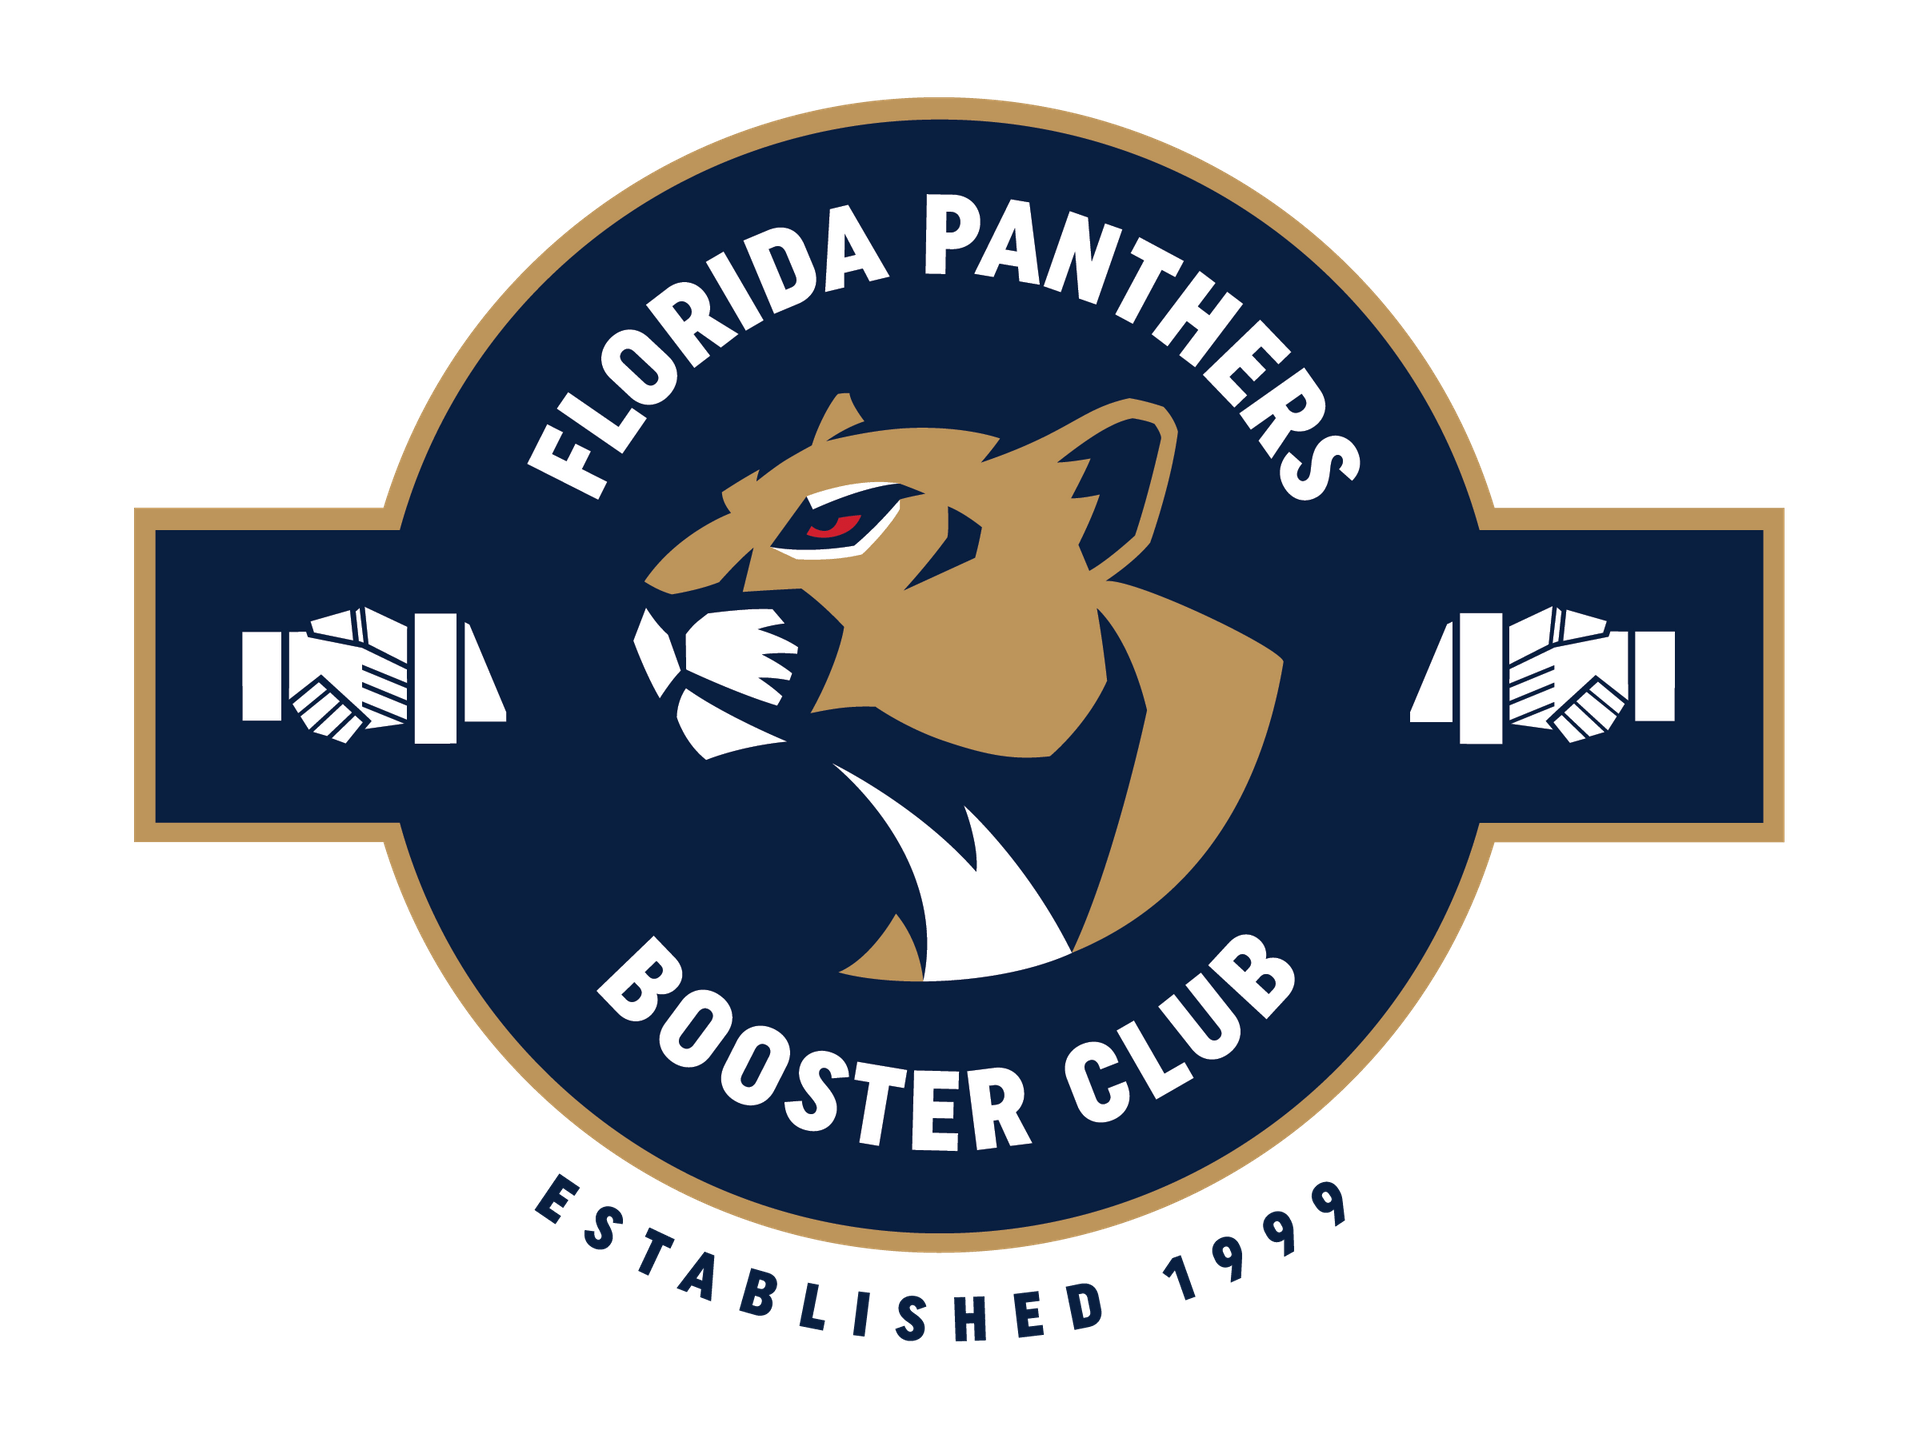 Florida Panthers Booster Club Accomplishments